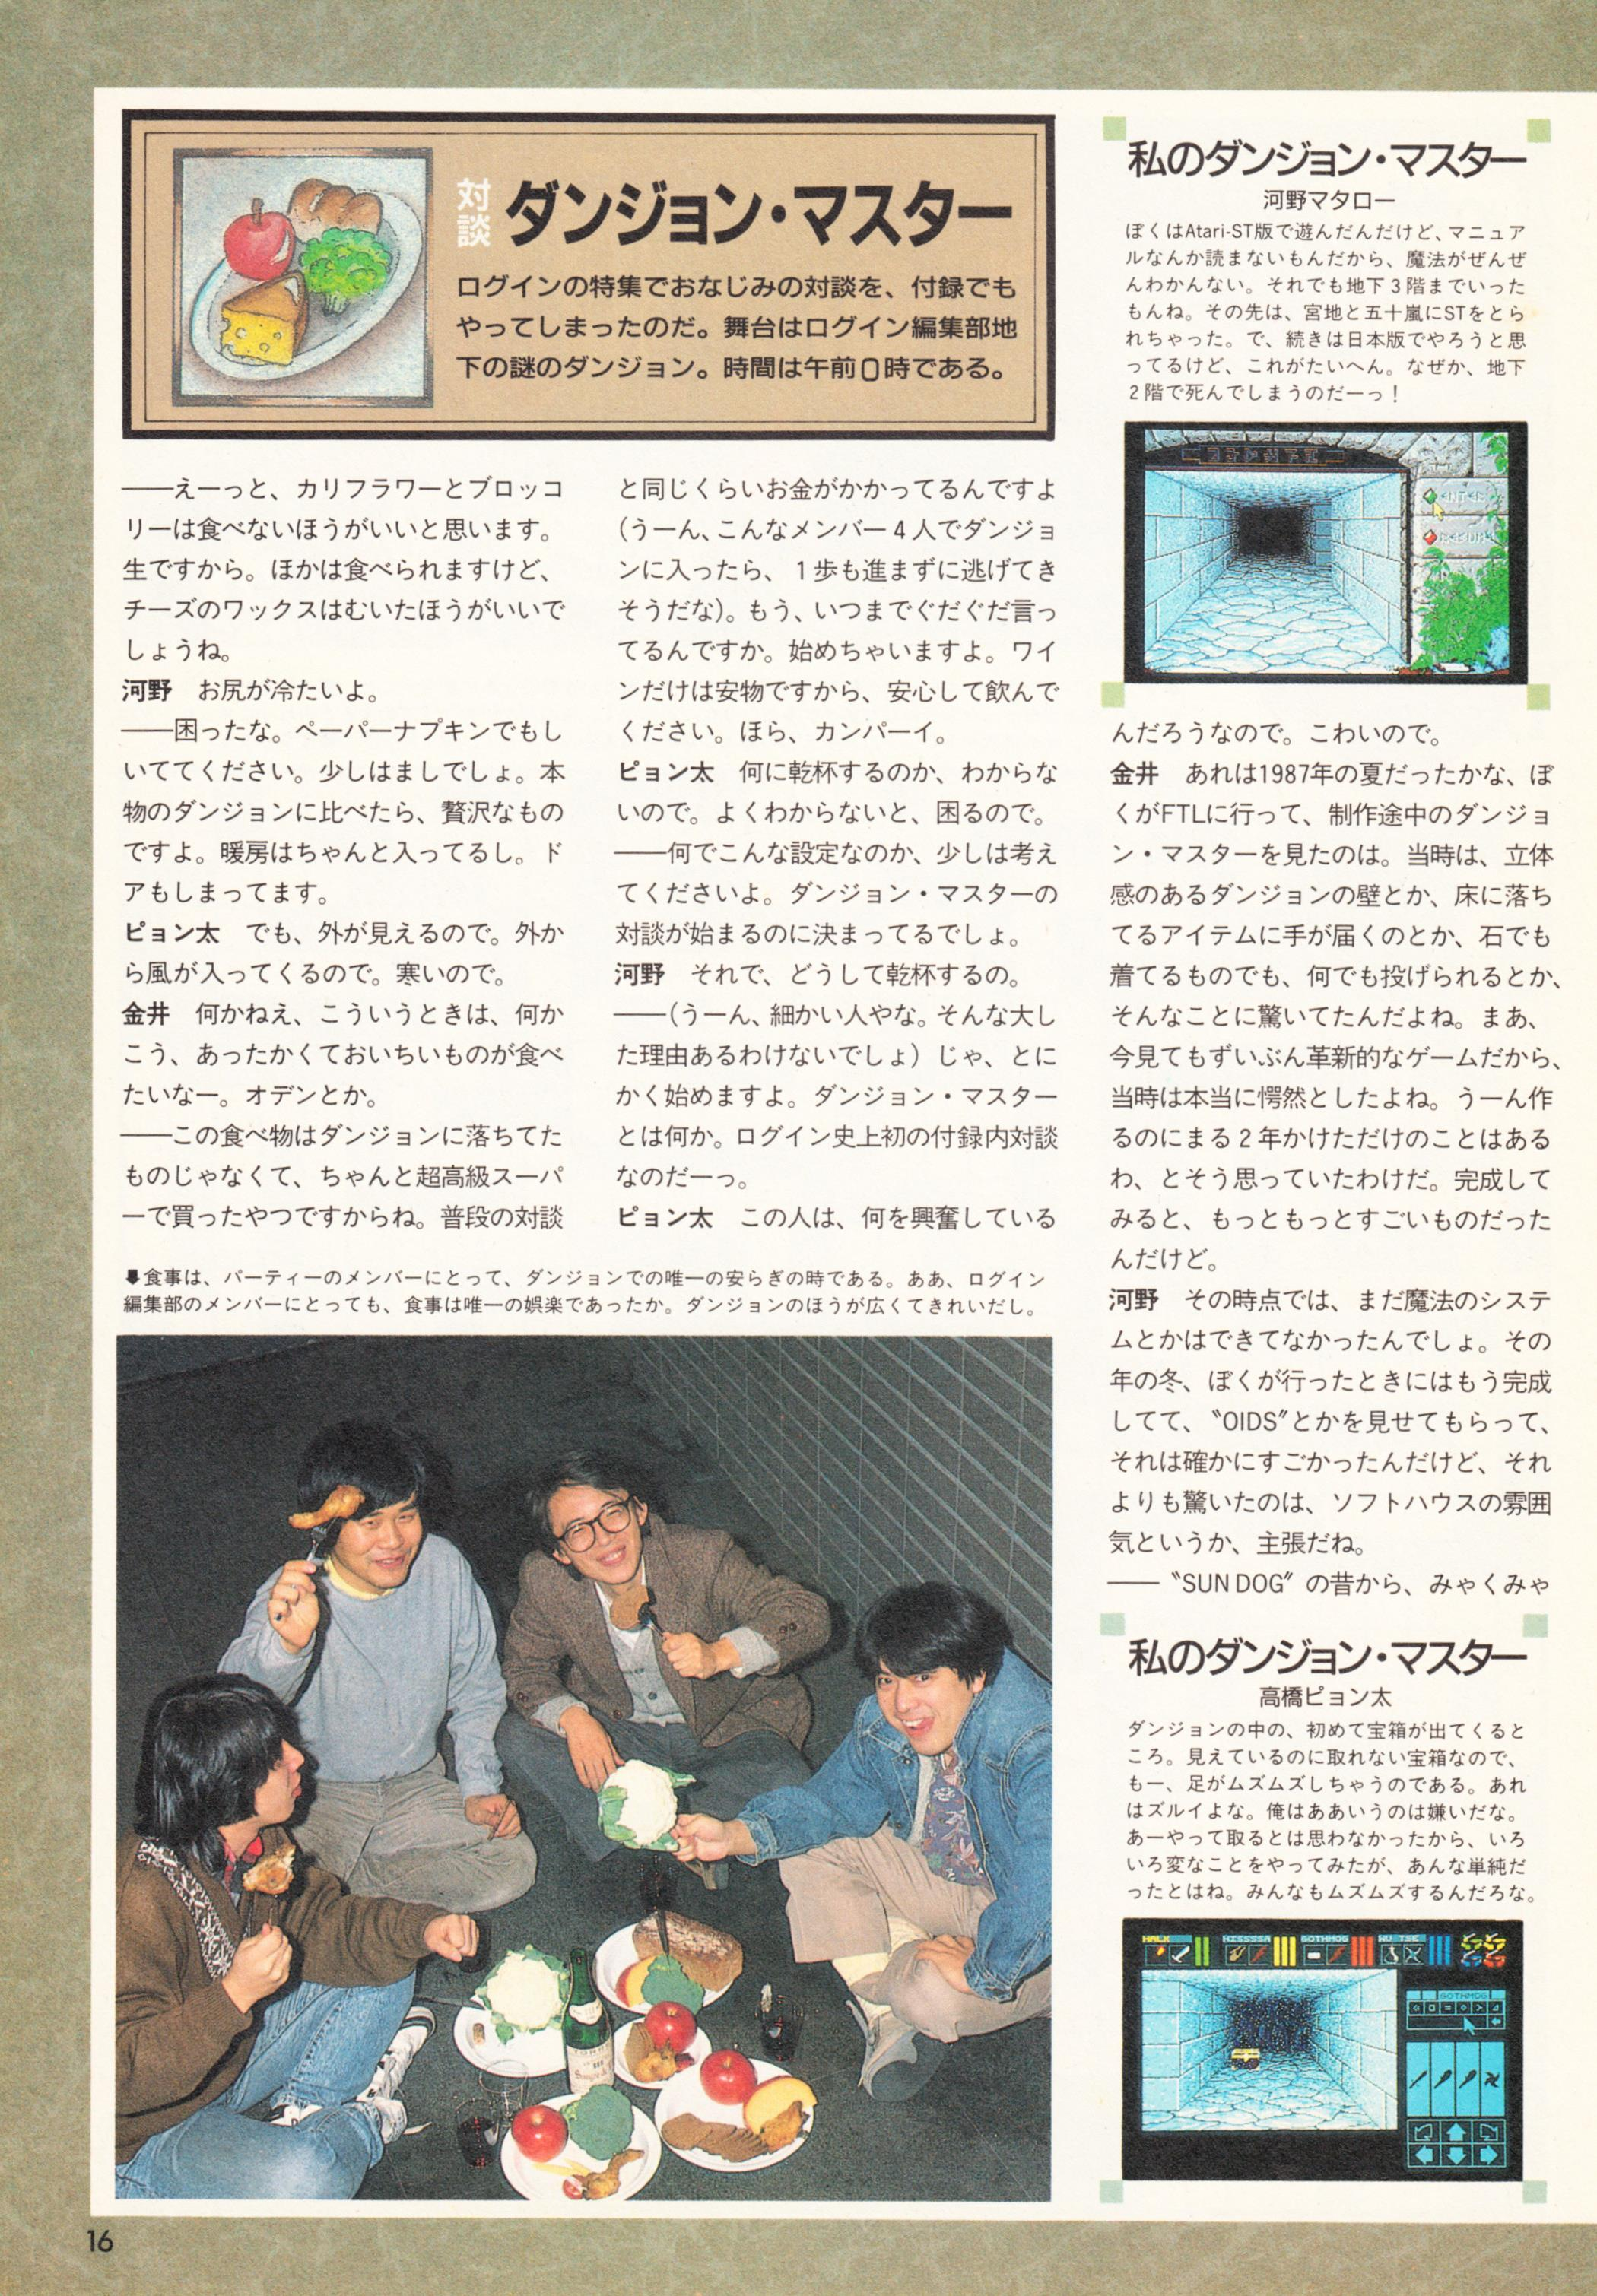 Special Supplement 2 - Dungeon Master Guide published in Japanese magazine 'Login', Vol 9 No 3 02 February 1990, Page 16